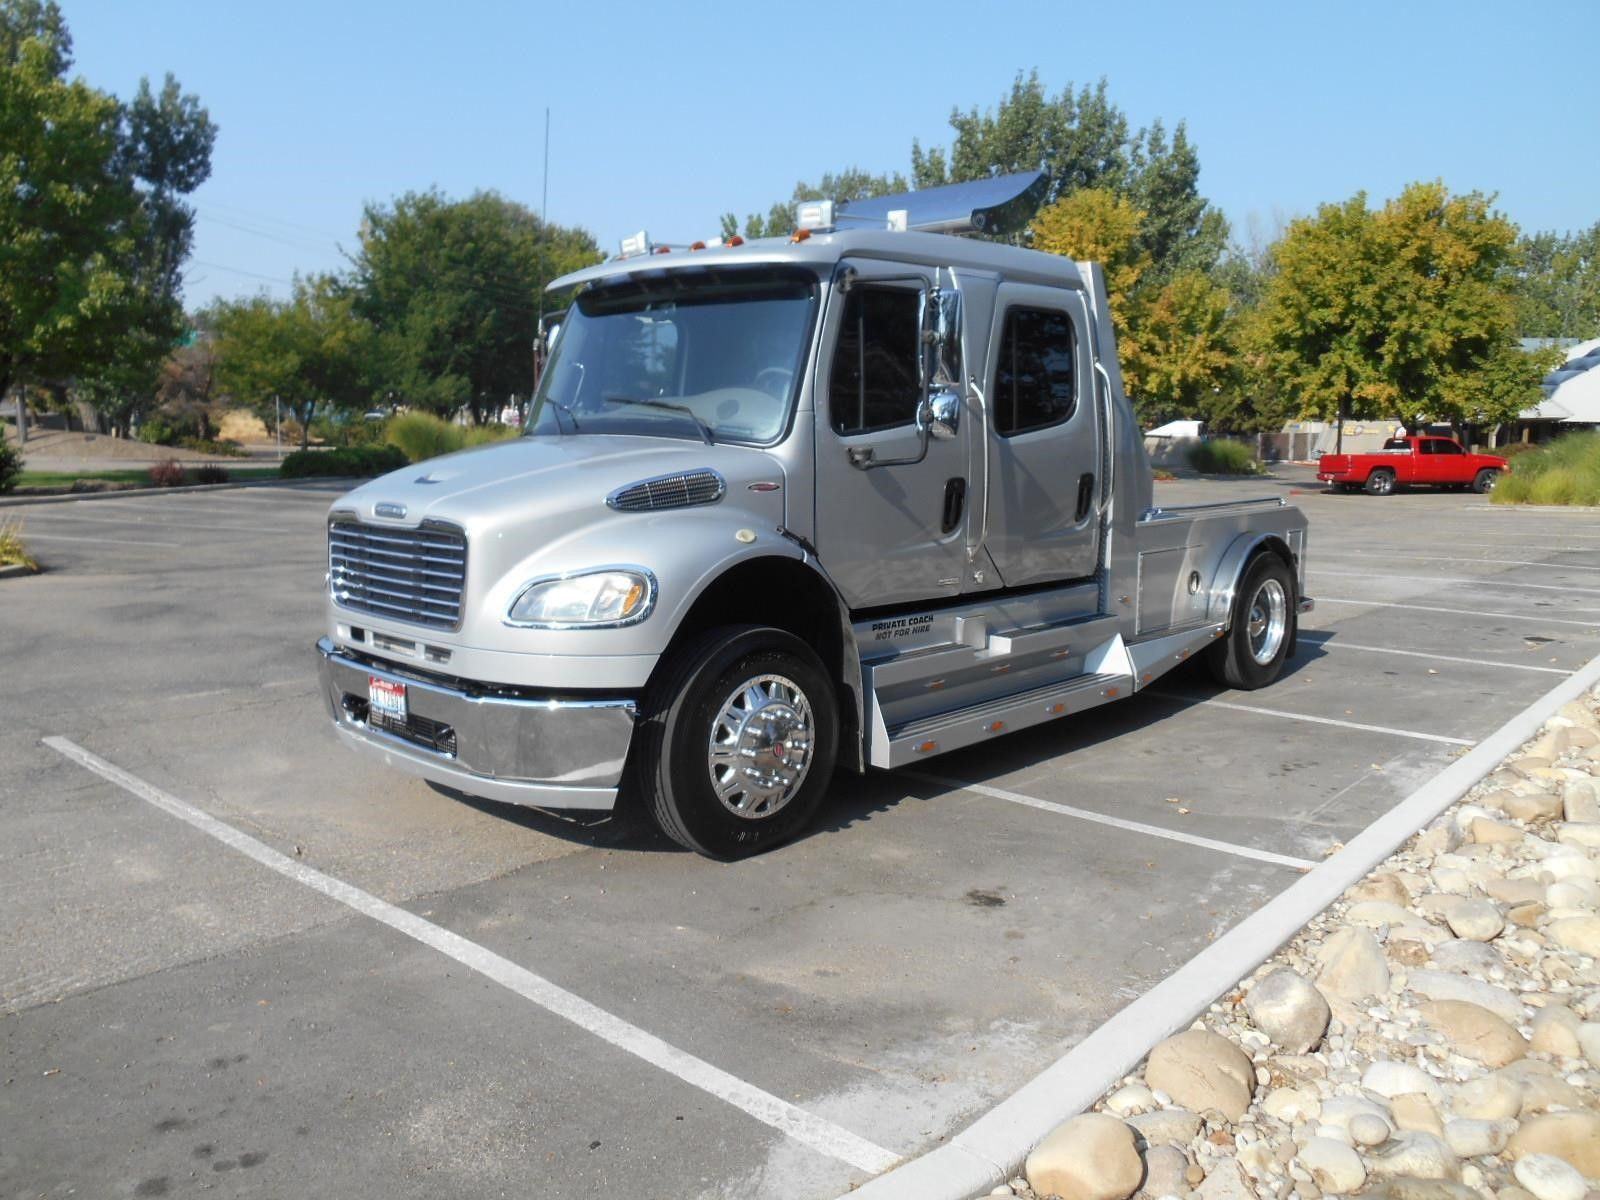 2008 Freightliner Sport Chassis P2xl At Truckpaper Com Dually Trucks Big Trucks Freightliner